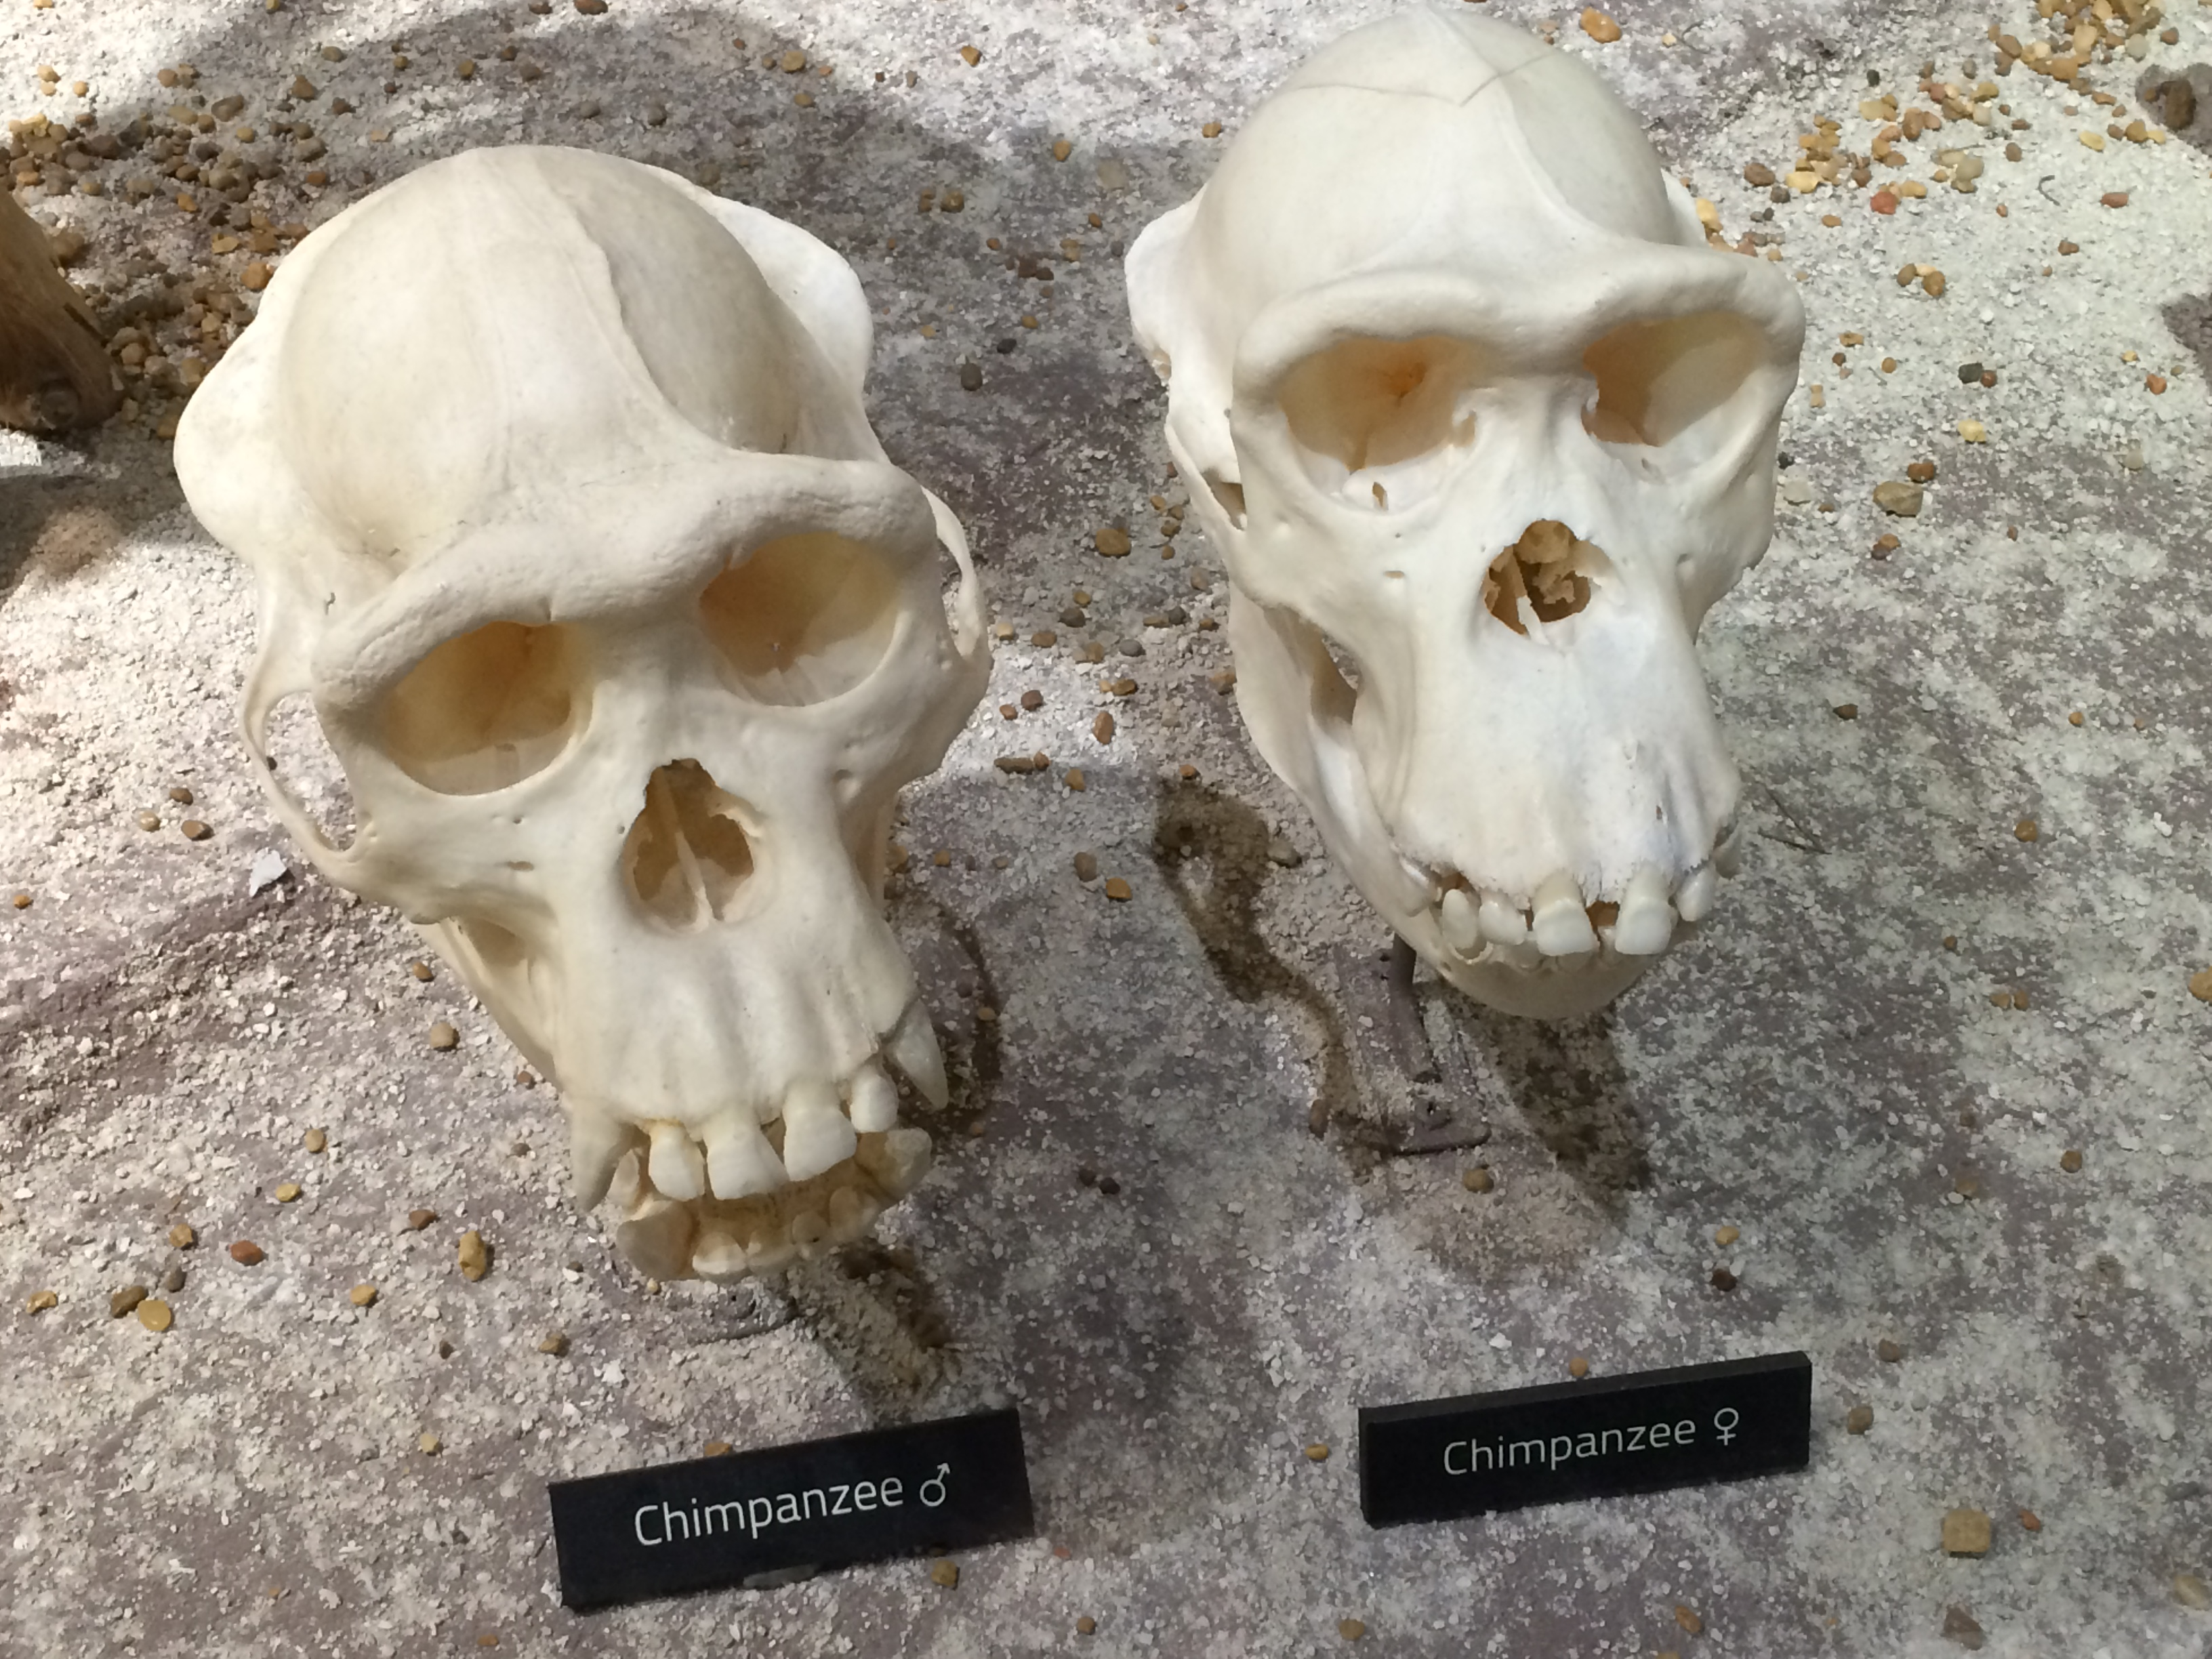 male and female chimpanzee skull comparison